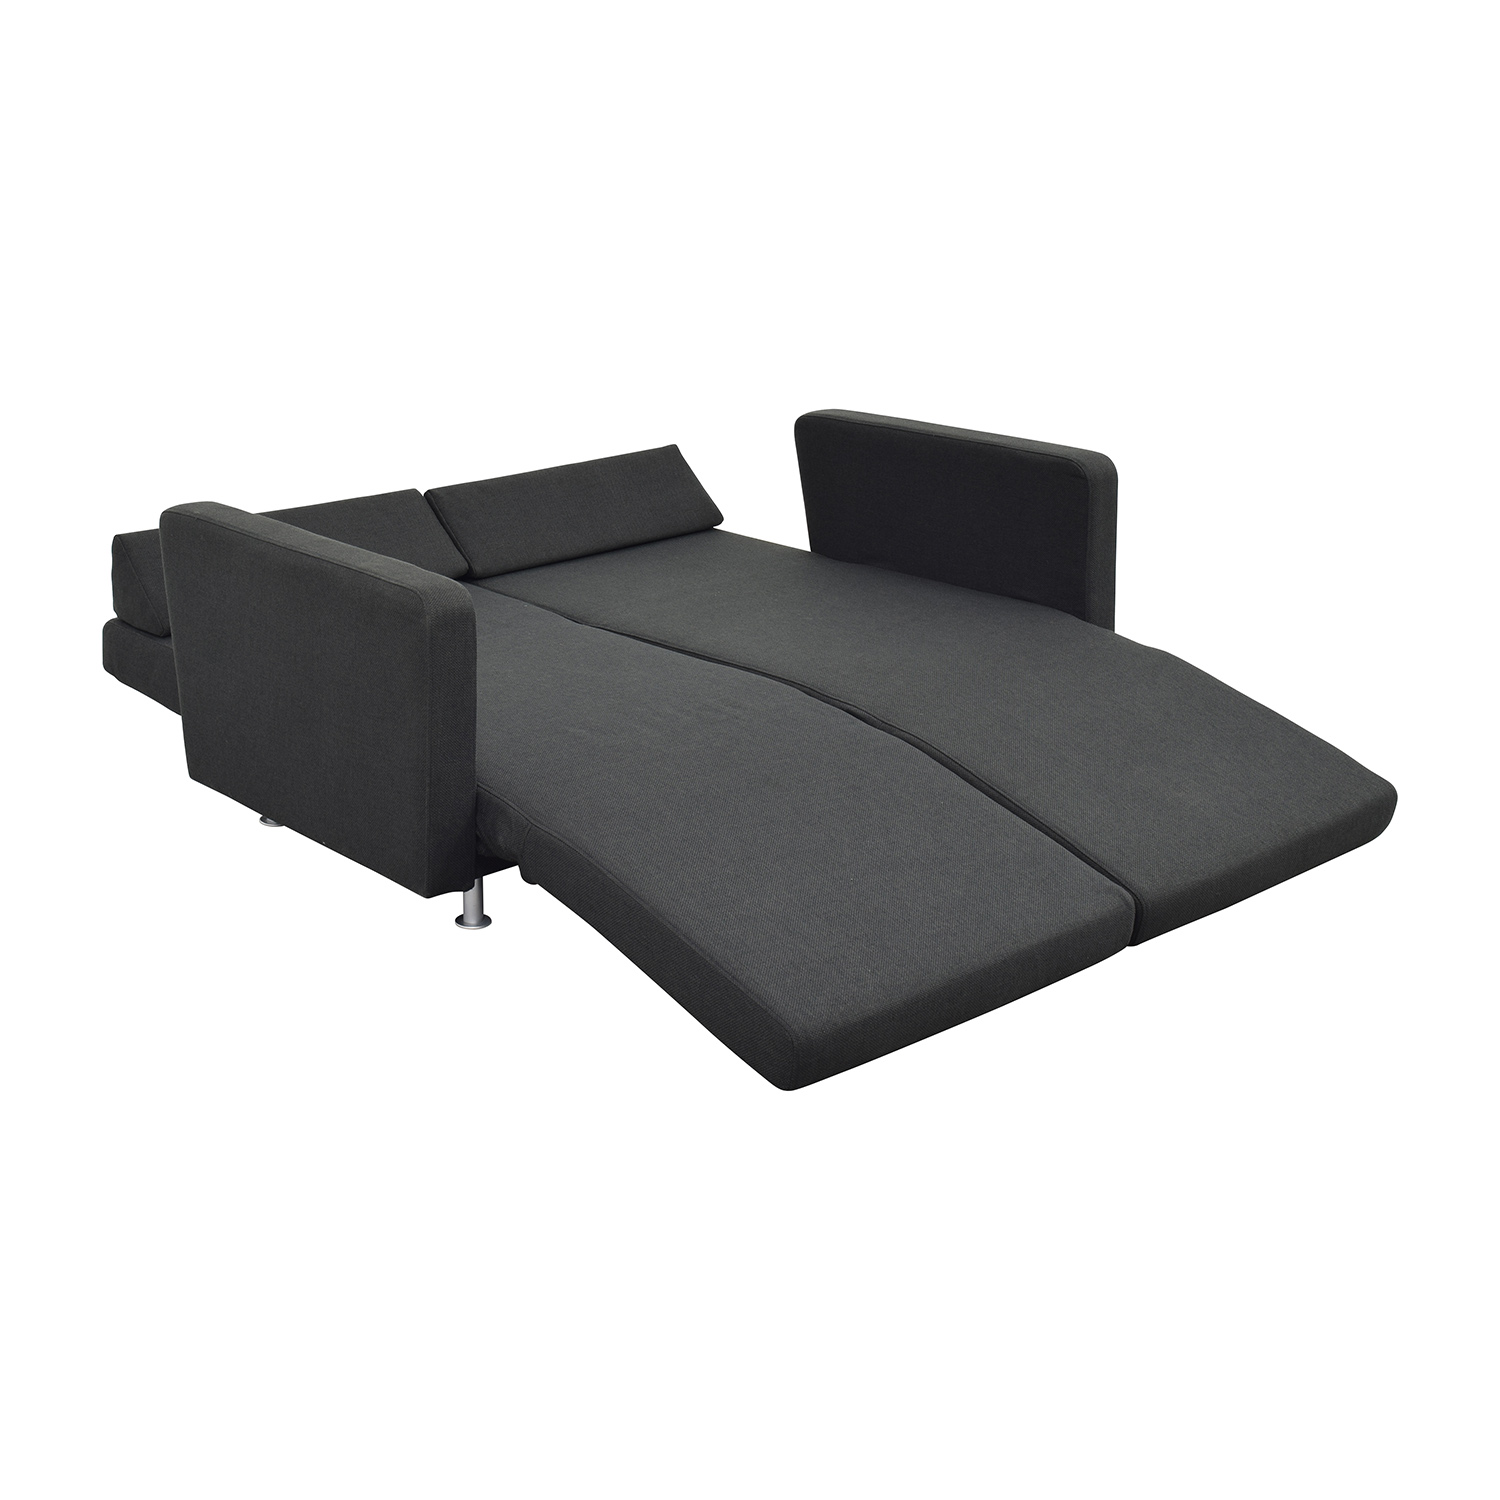 67% OFF BoConcept BoConcept Melo Black Sofa Bed Sofas